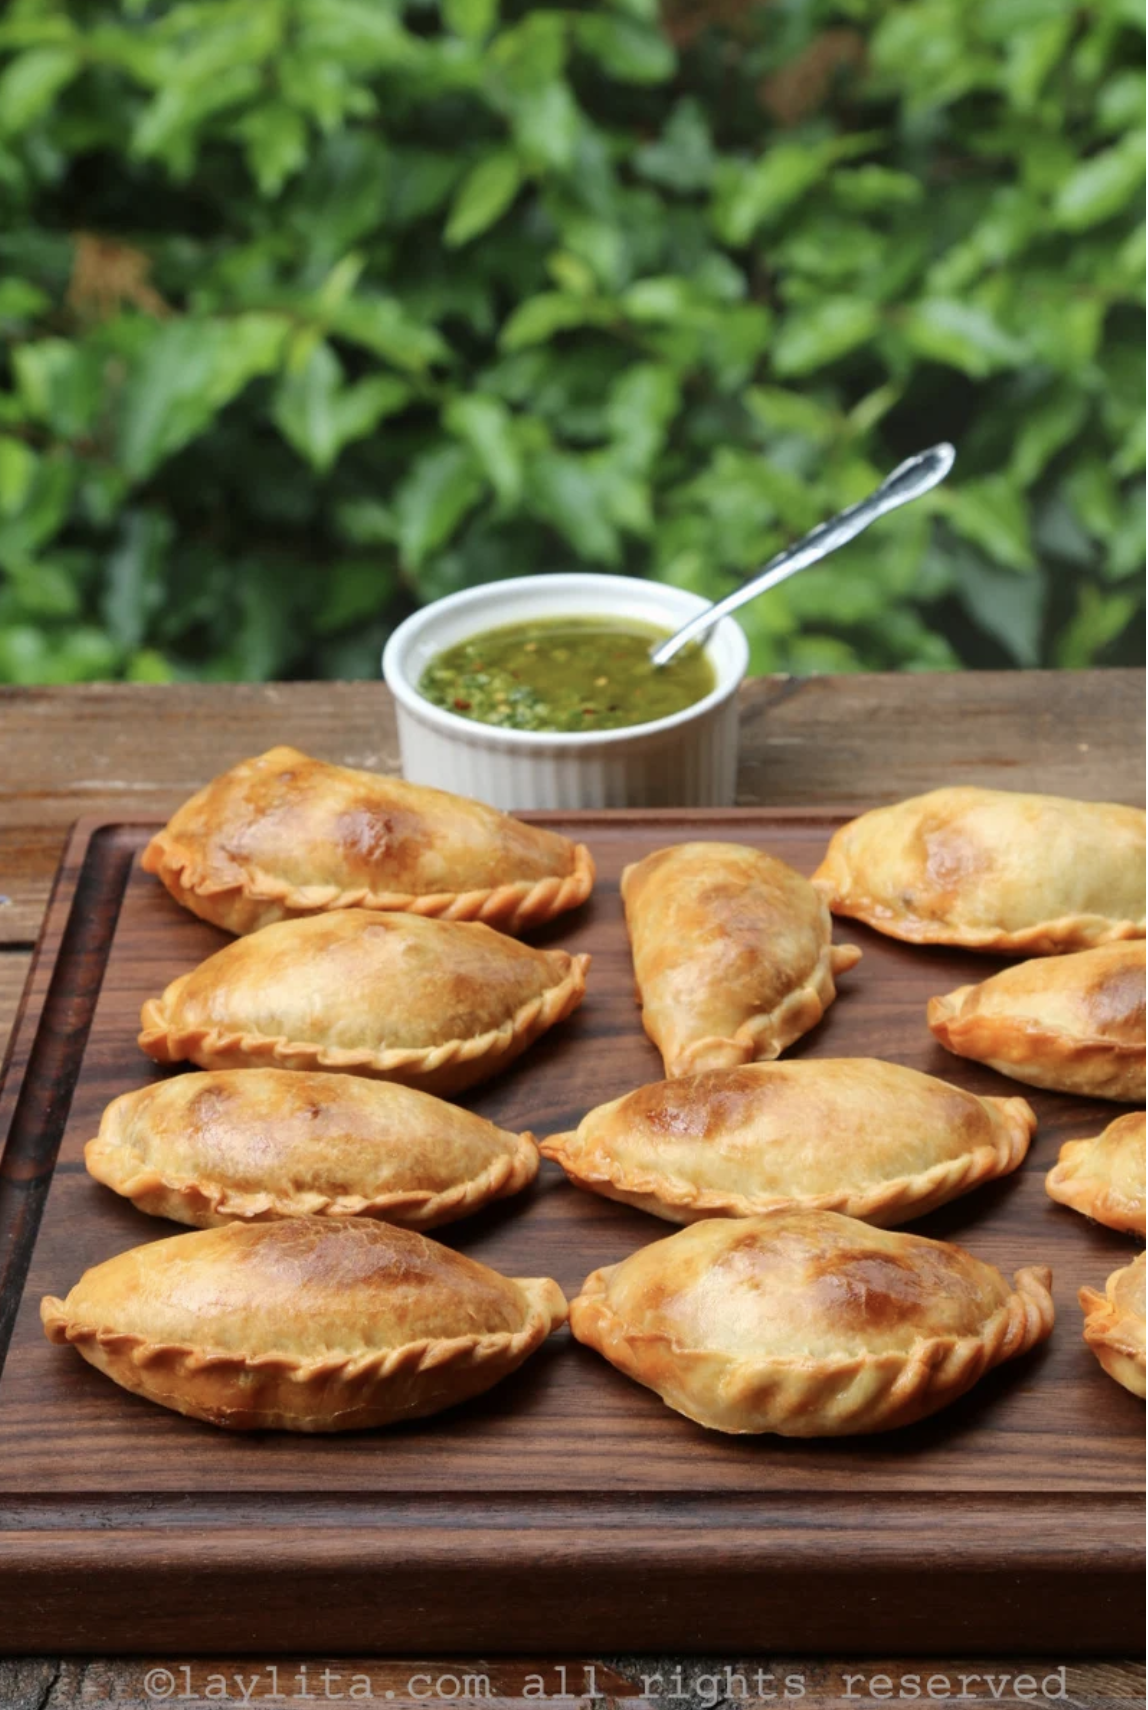 In front of a blurred background of greenery, a wooden board holds brown and crispy empanadas with crimped edges while a small bowl holds a vibrant green dipping sauce